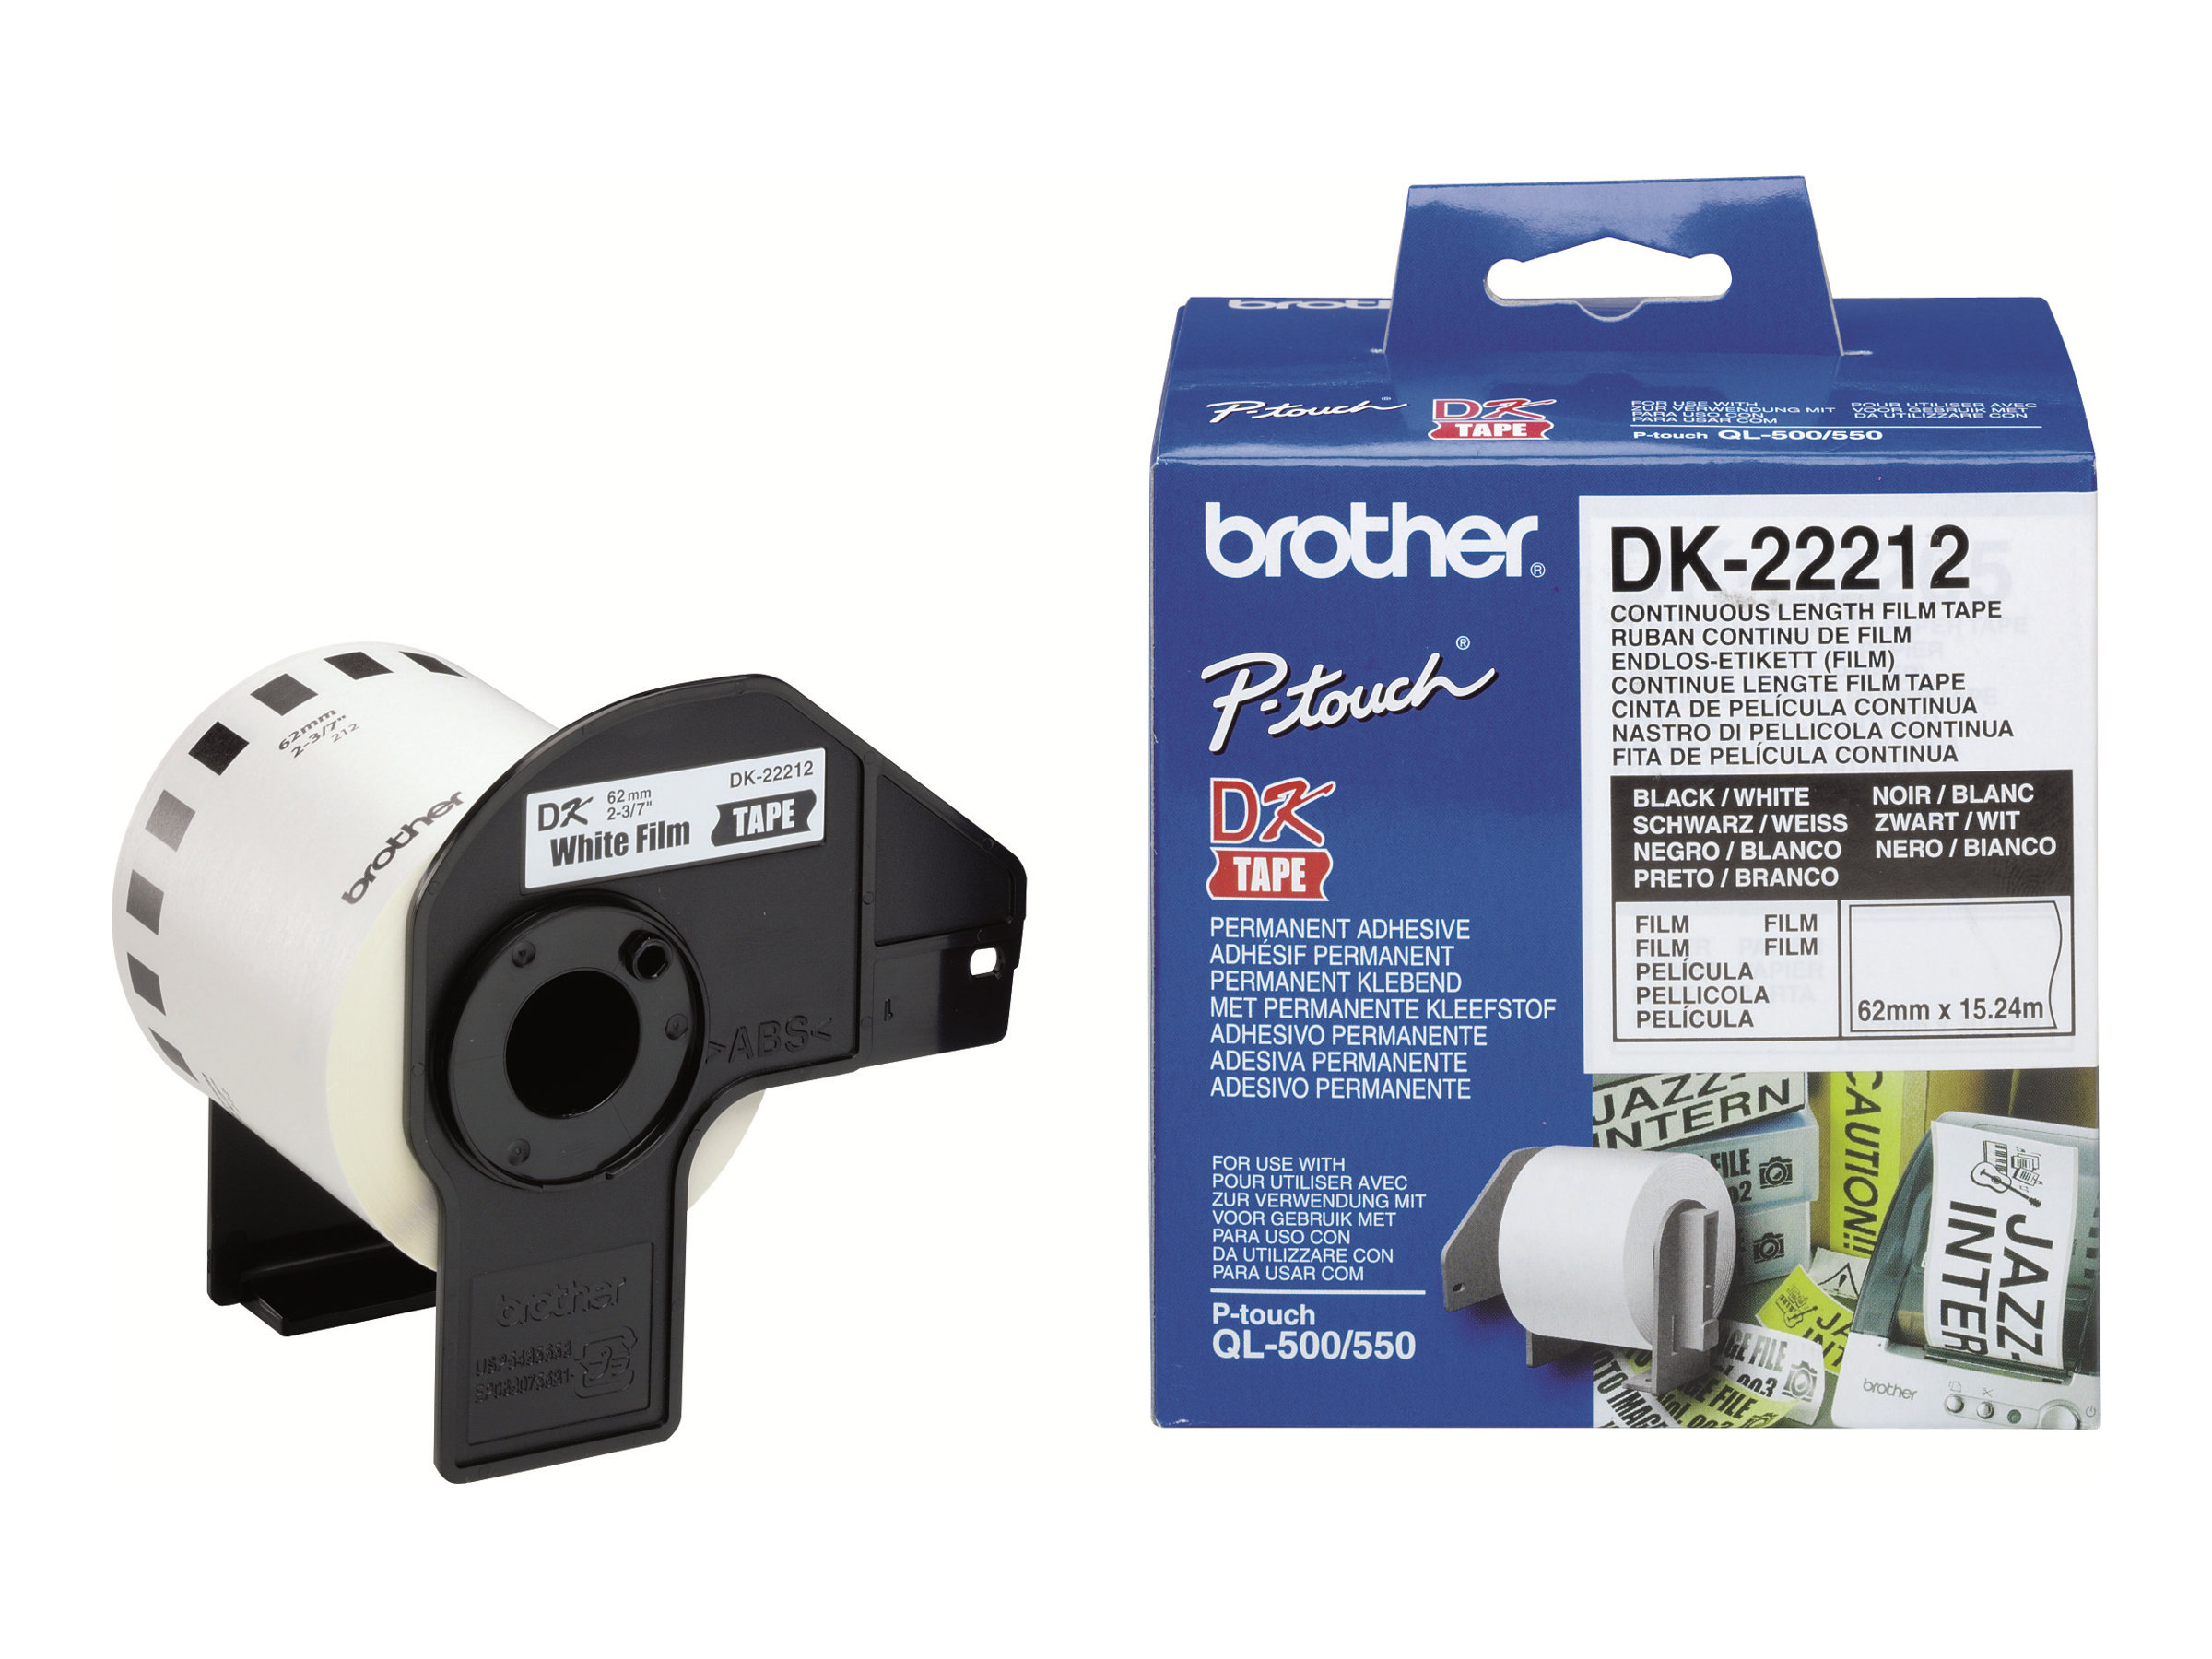 Brother DK-22212 - Permanenter Klebstoff - weiß - Rolle (6,2 cm x 15,2 m) Band - für Brother QL-1050, 1060, 500, 550, 560, 570, 580, 650, 700, 710, 720, 820